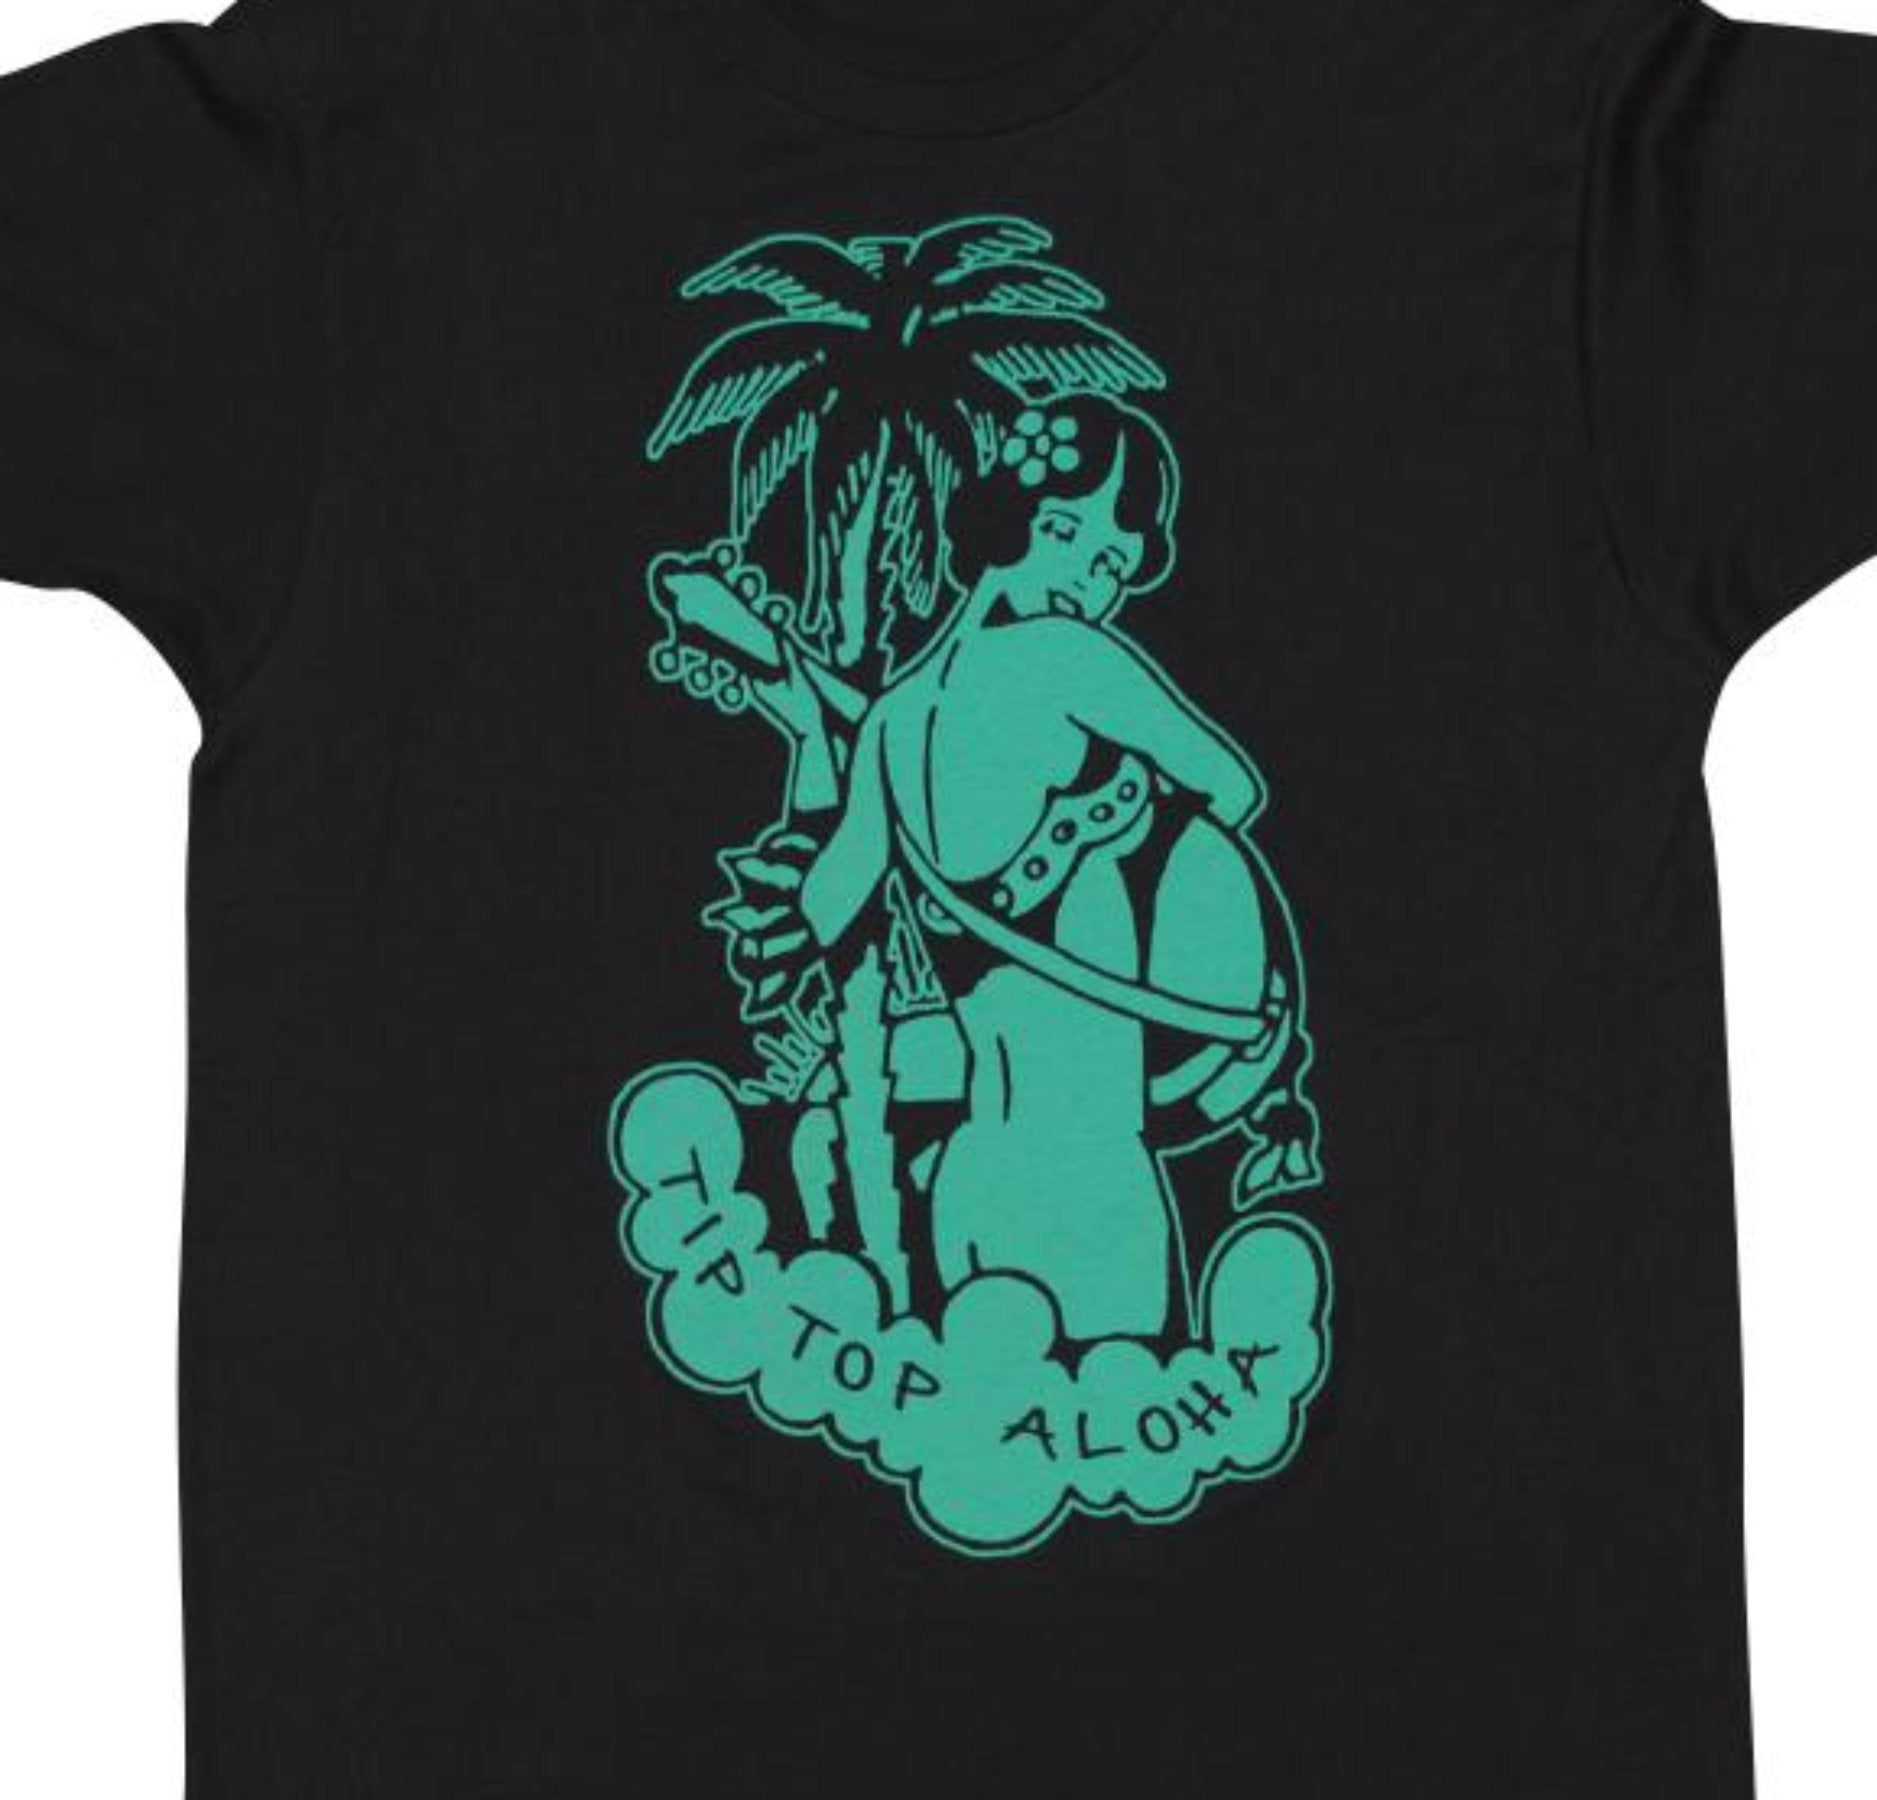 The TIP-TOP ALOHA Tee